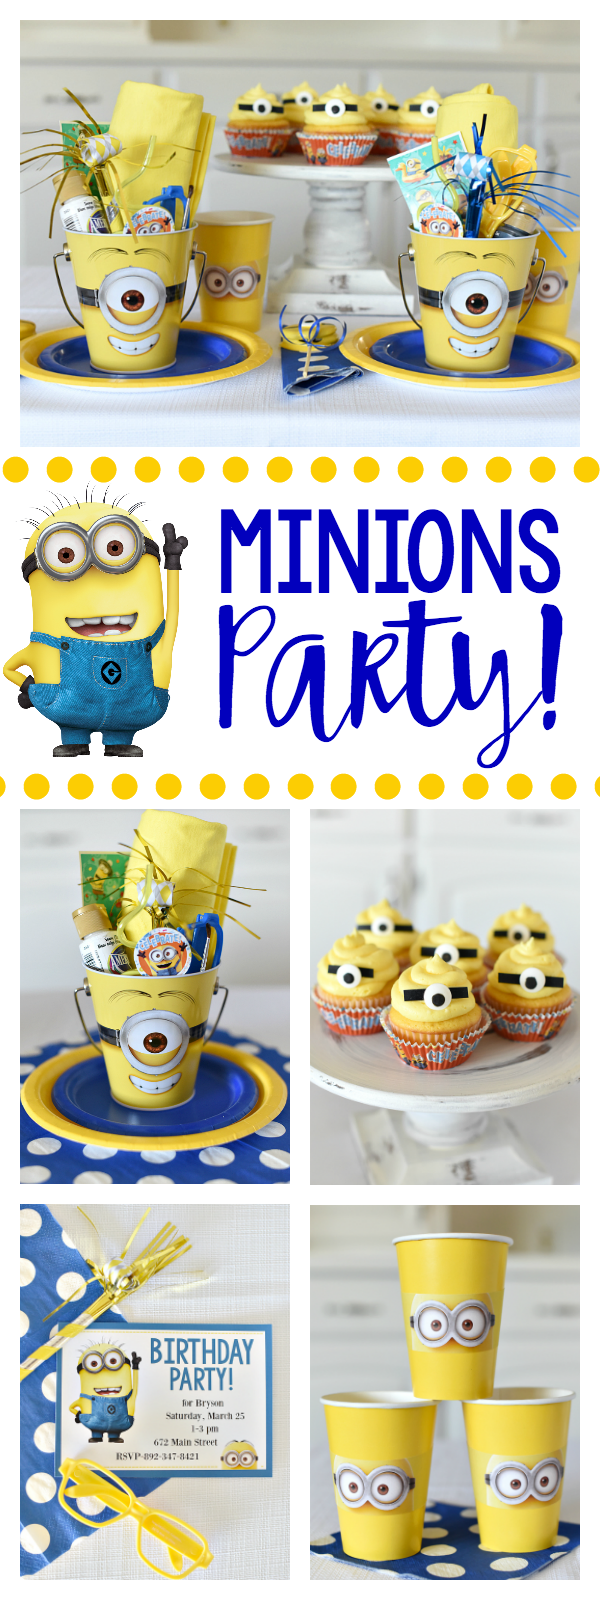 Minion Party Ideas For A Kids Birthday Invitations Decorations Food